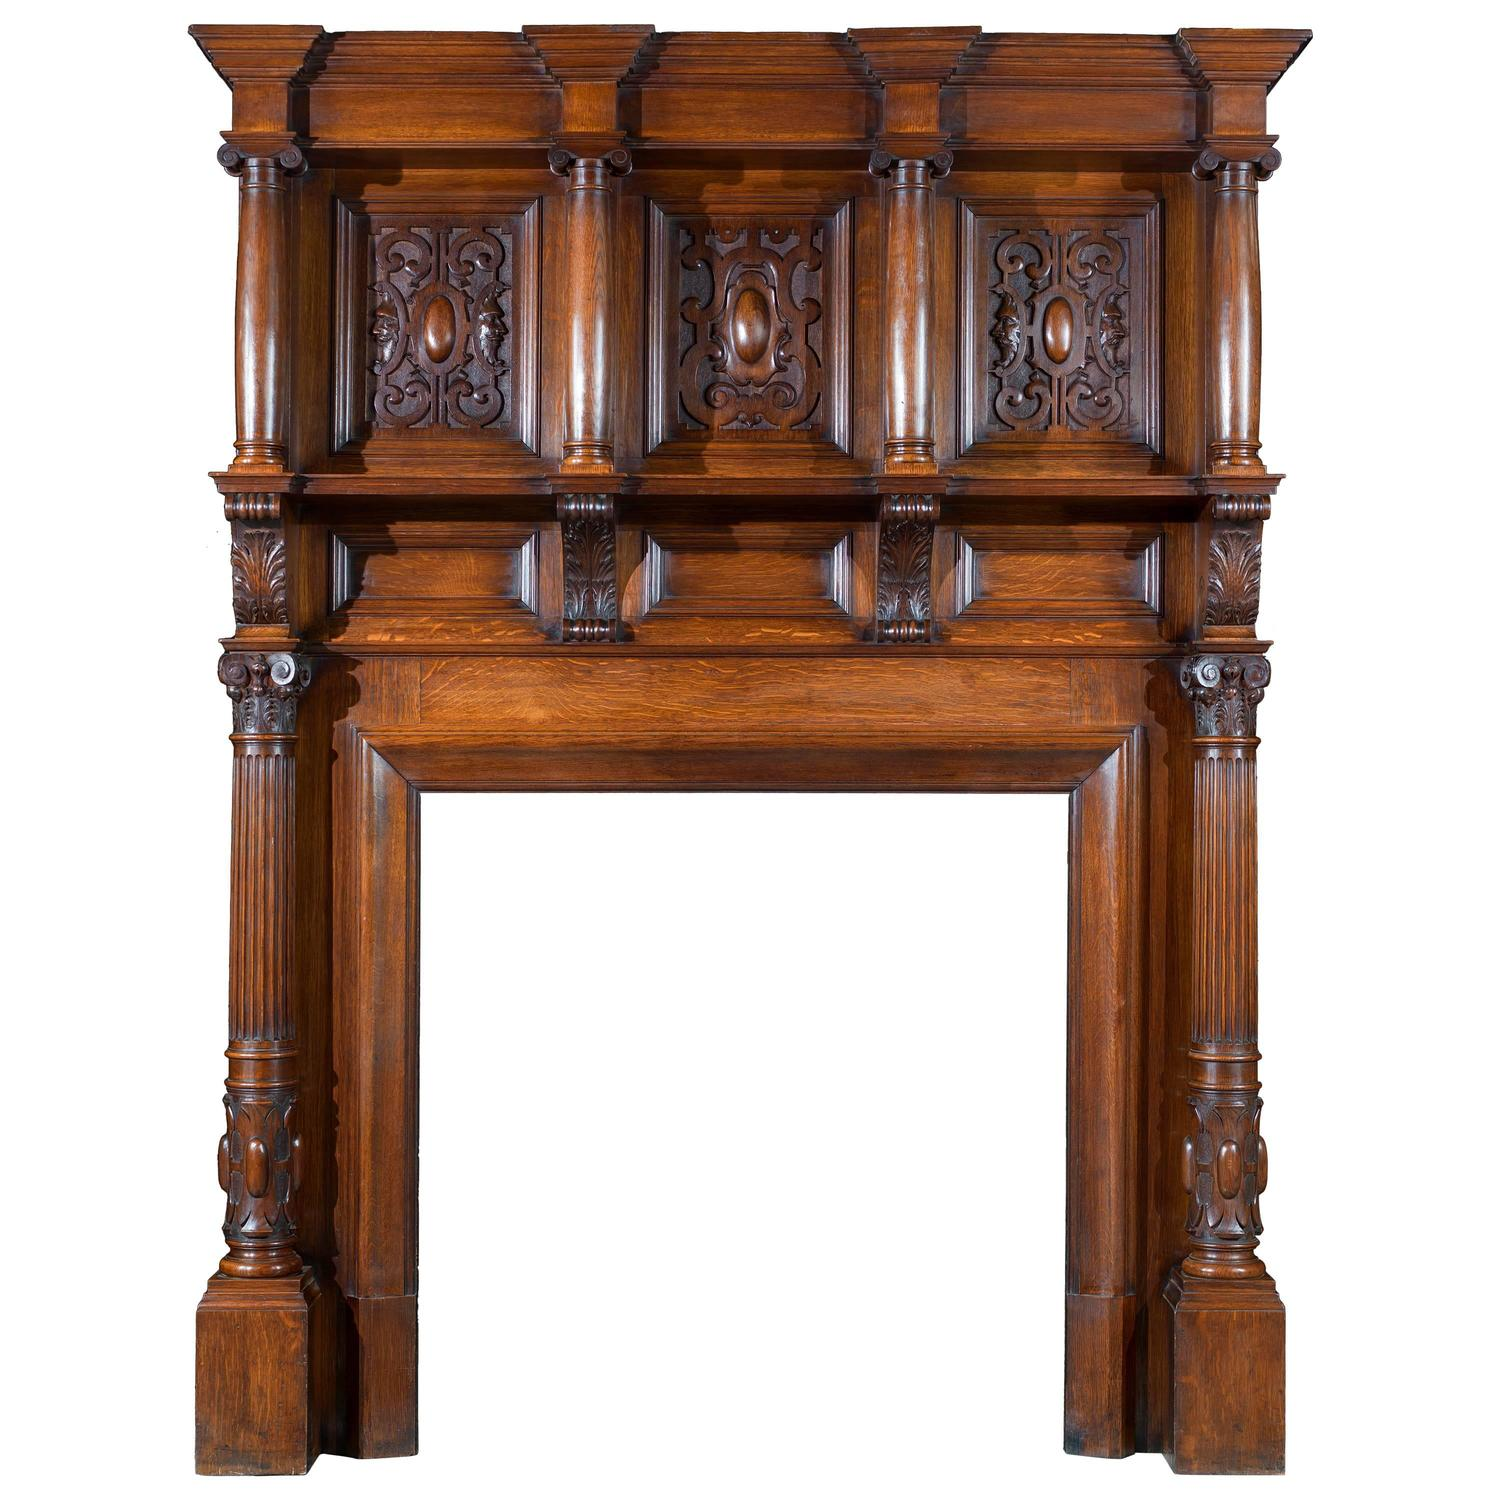 edwardian antique oak fireplace and overmantel in the jacobean